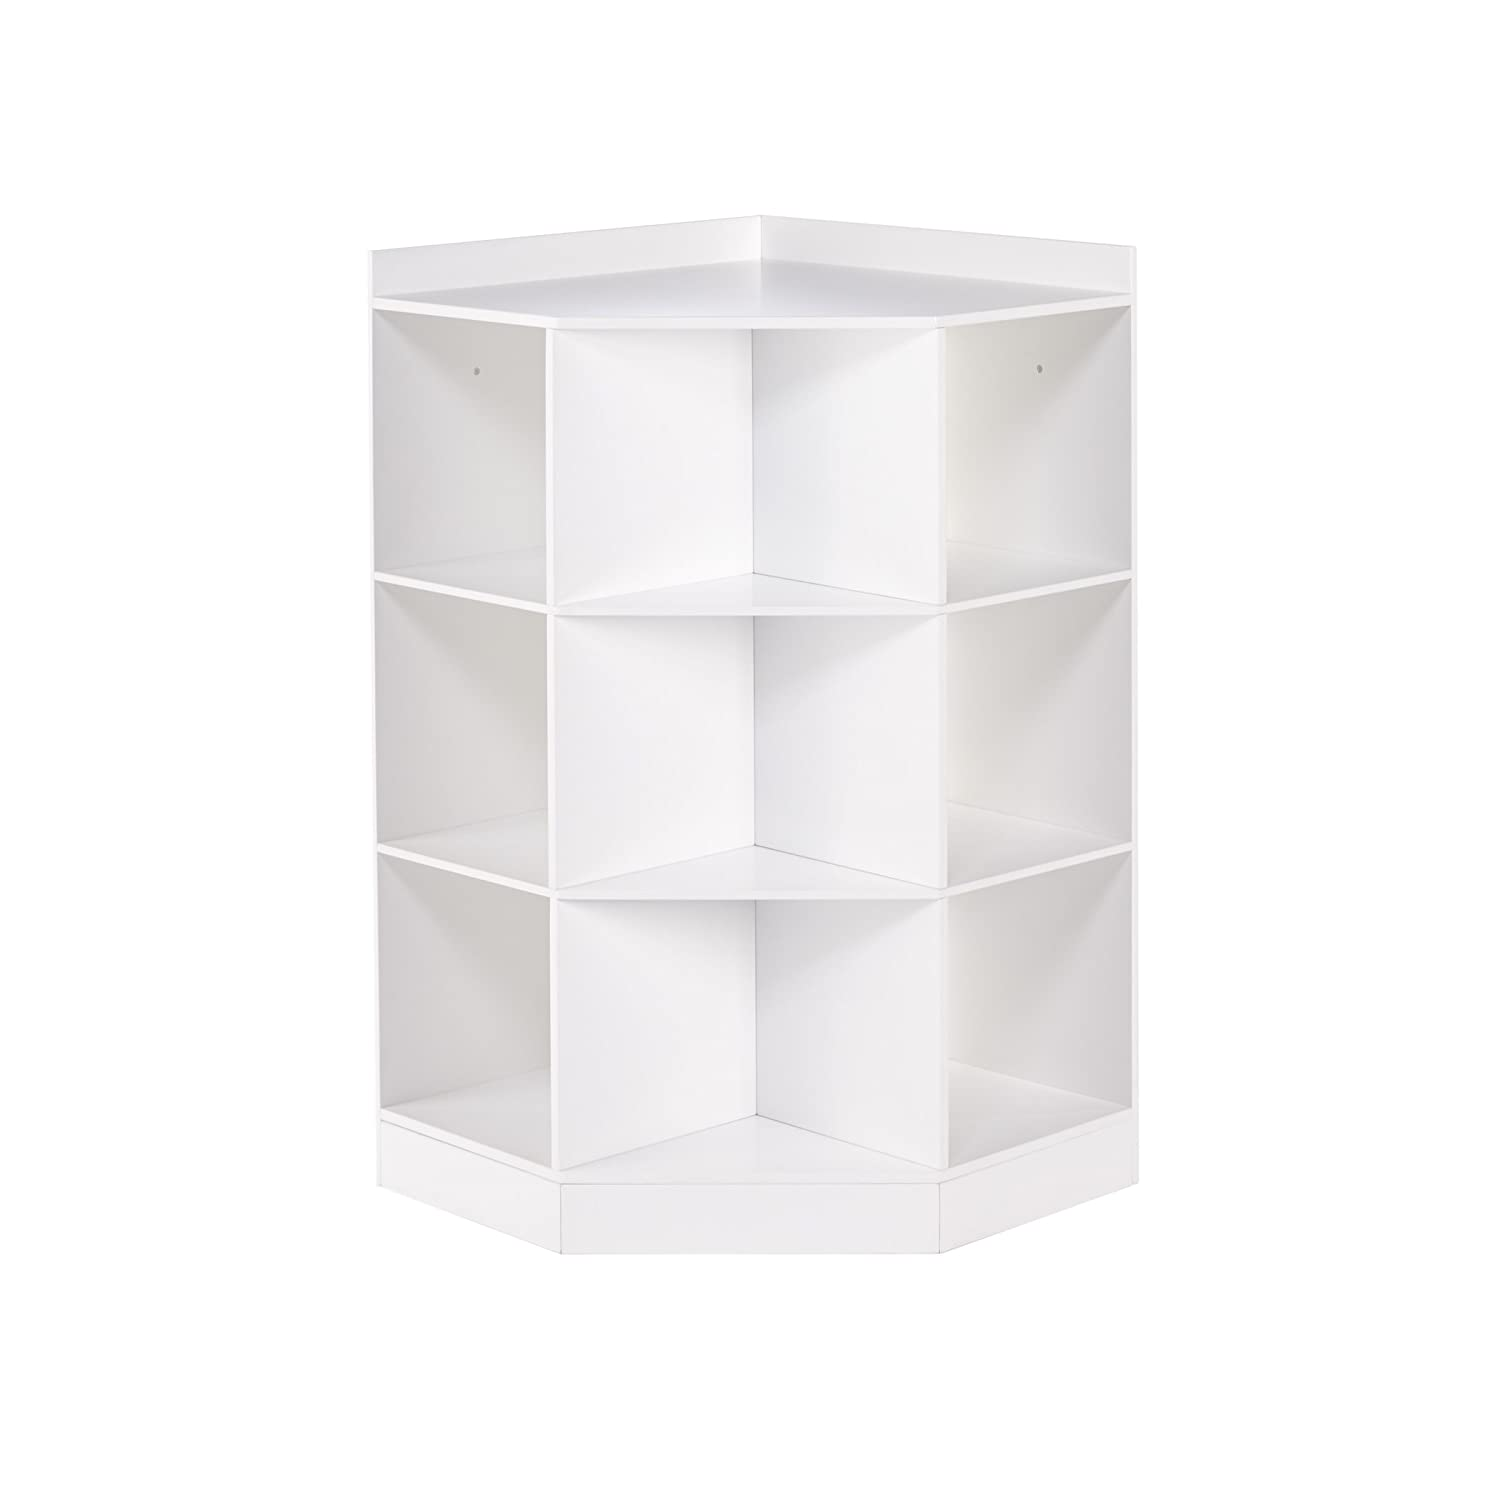 RiverRidge 02-144 6-Cubby, 3-Shelf Kids Corner Cabinet, White